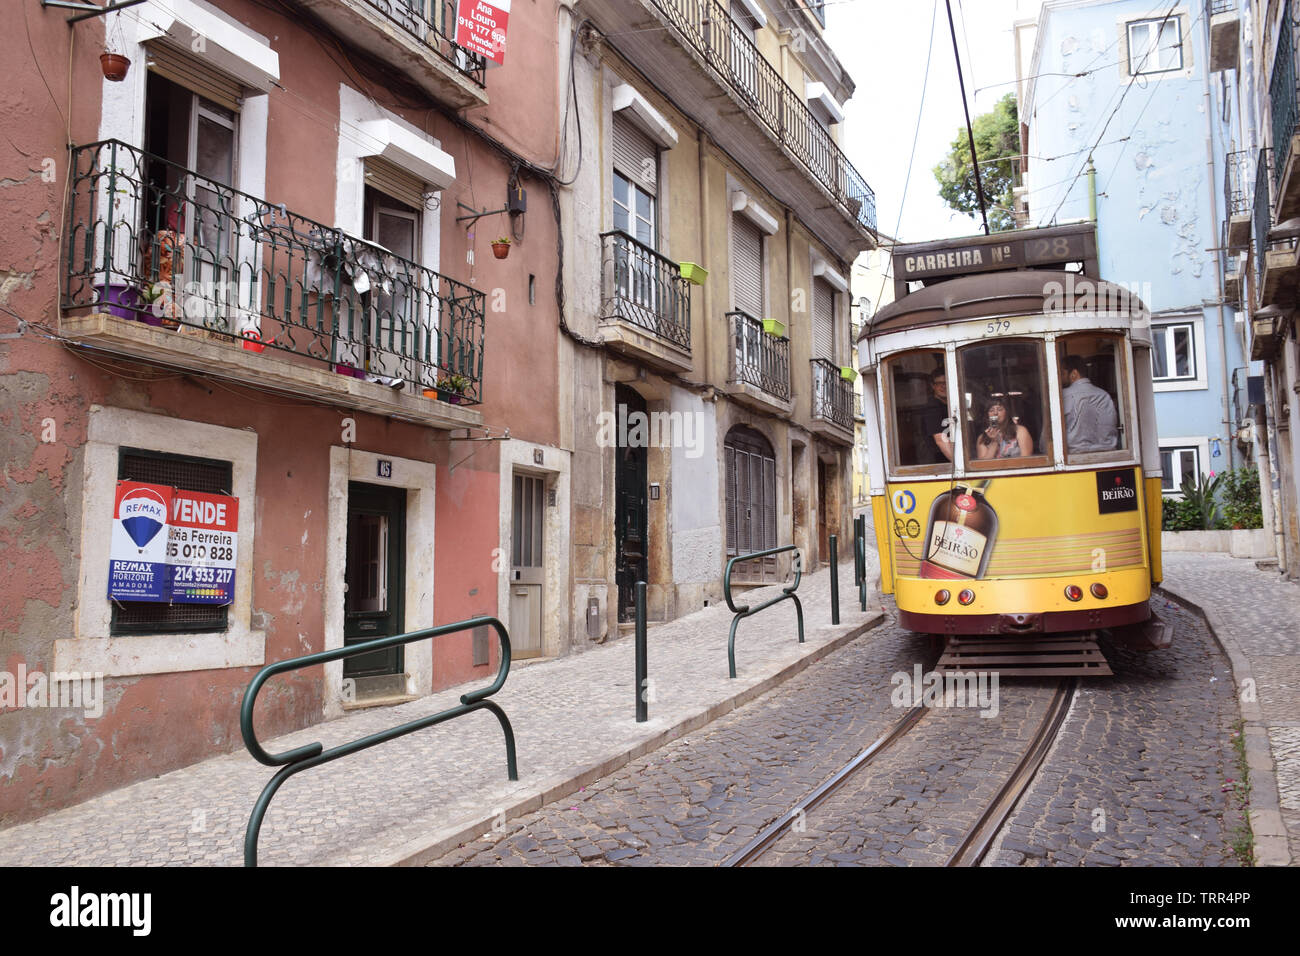 28E tram, much used by tourists, Alfama, Lisbon, Portugal, June 2019 - Stock Image